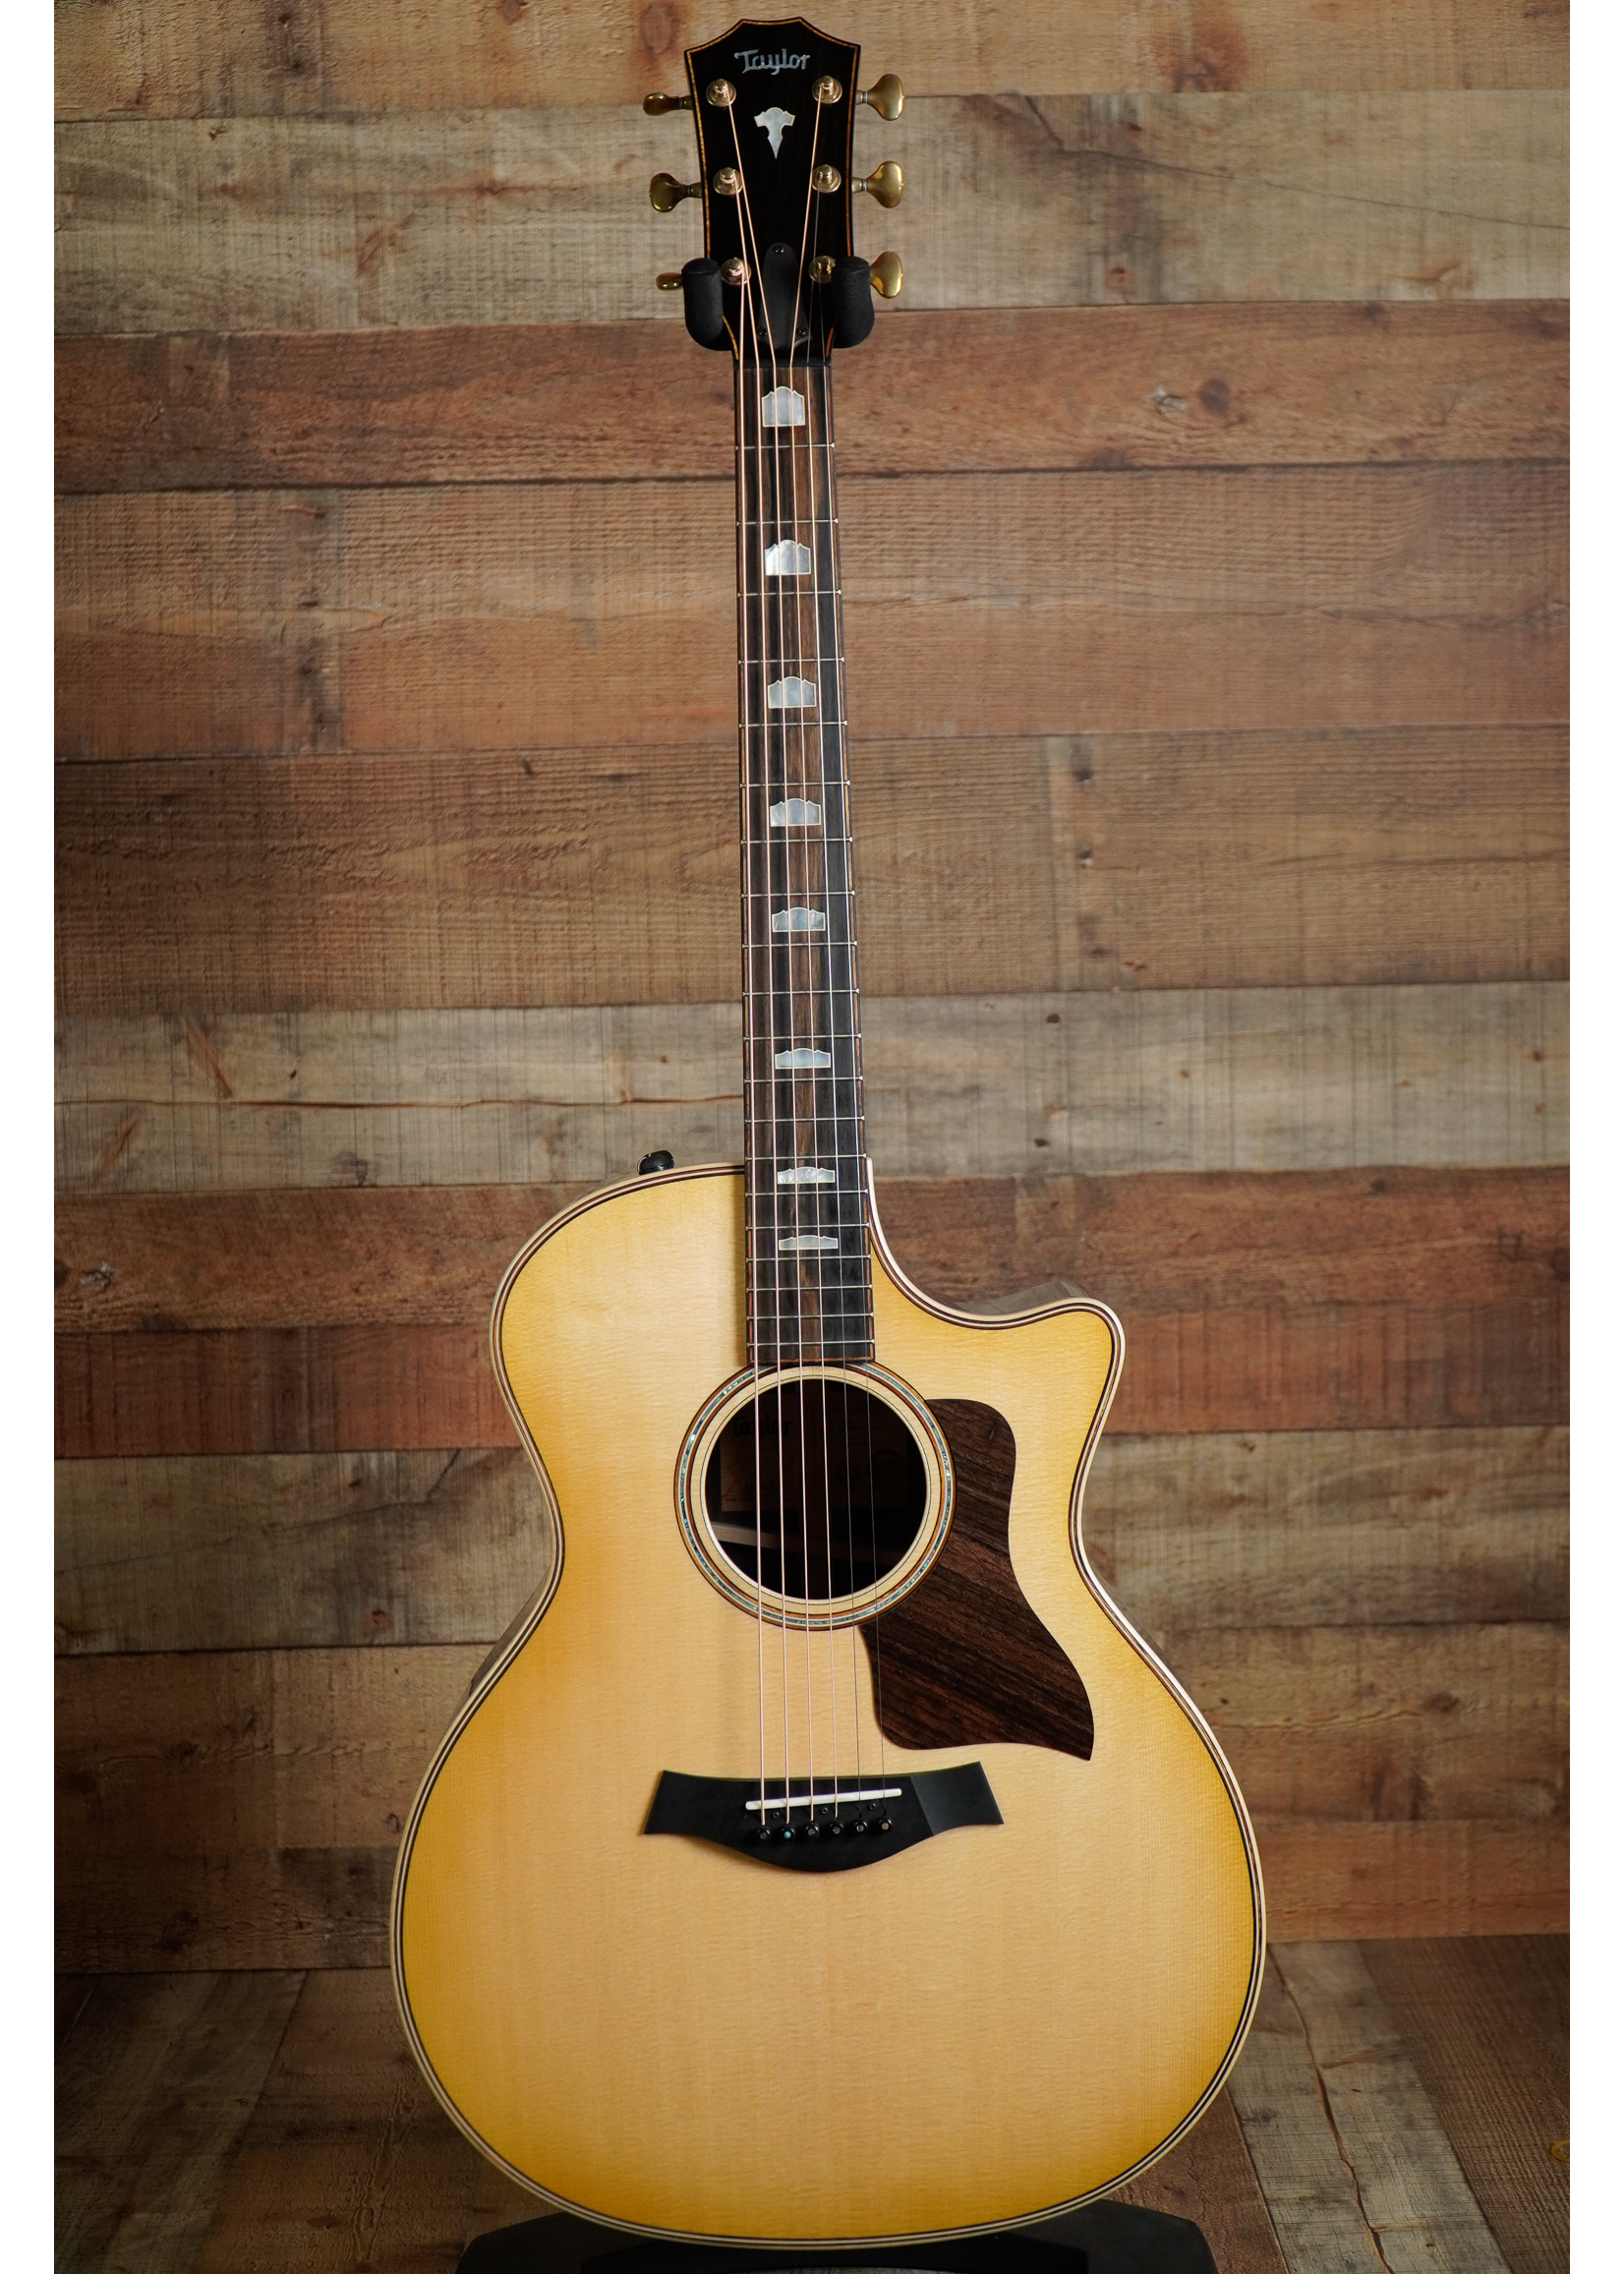 Taylor Taylor Custom #18 Namm Exclusive Only 50 Available Worldwide